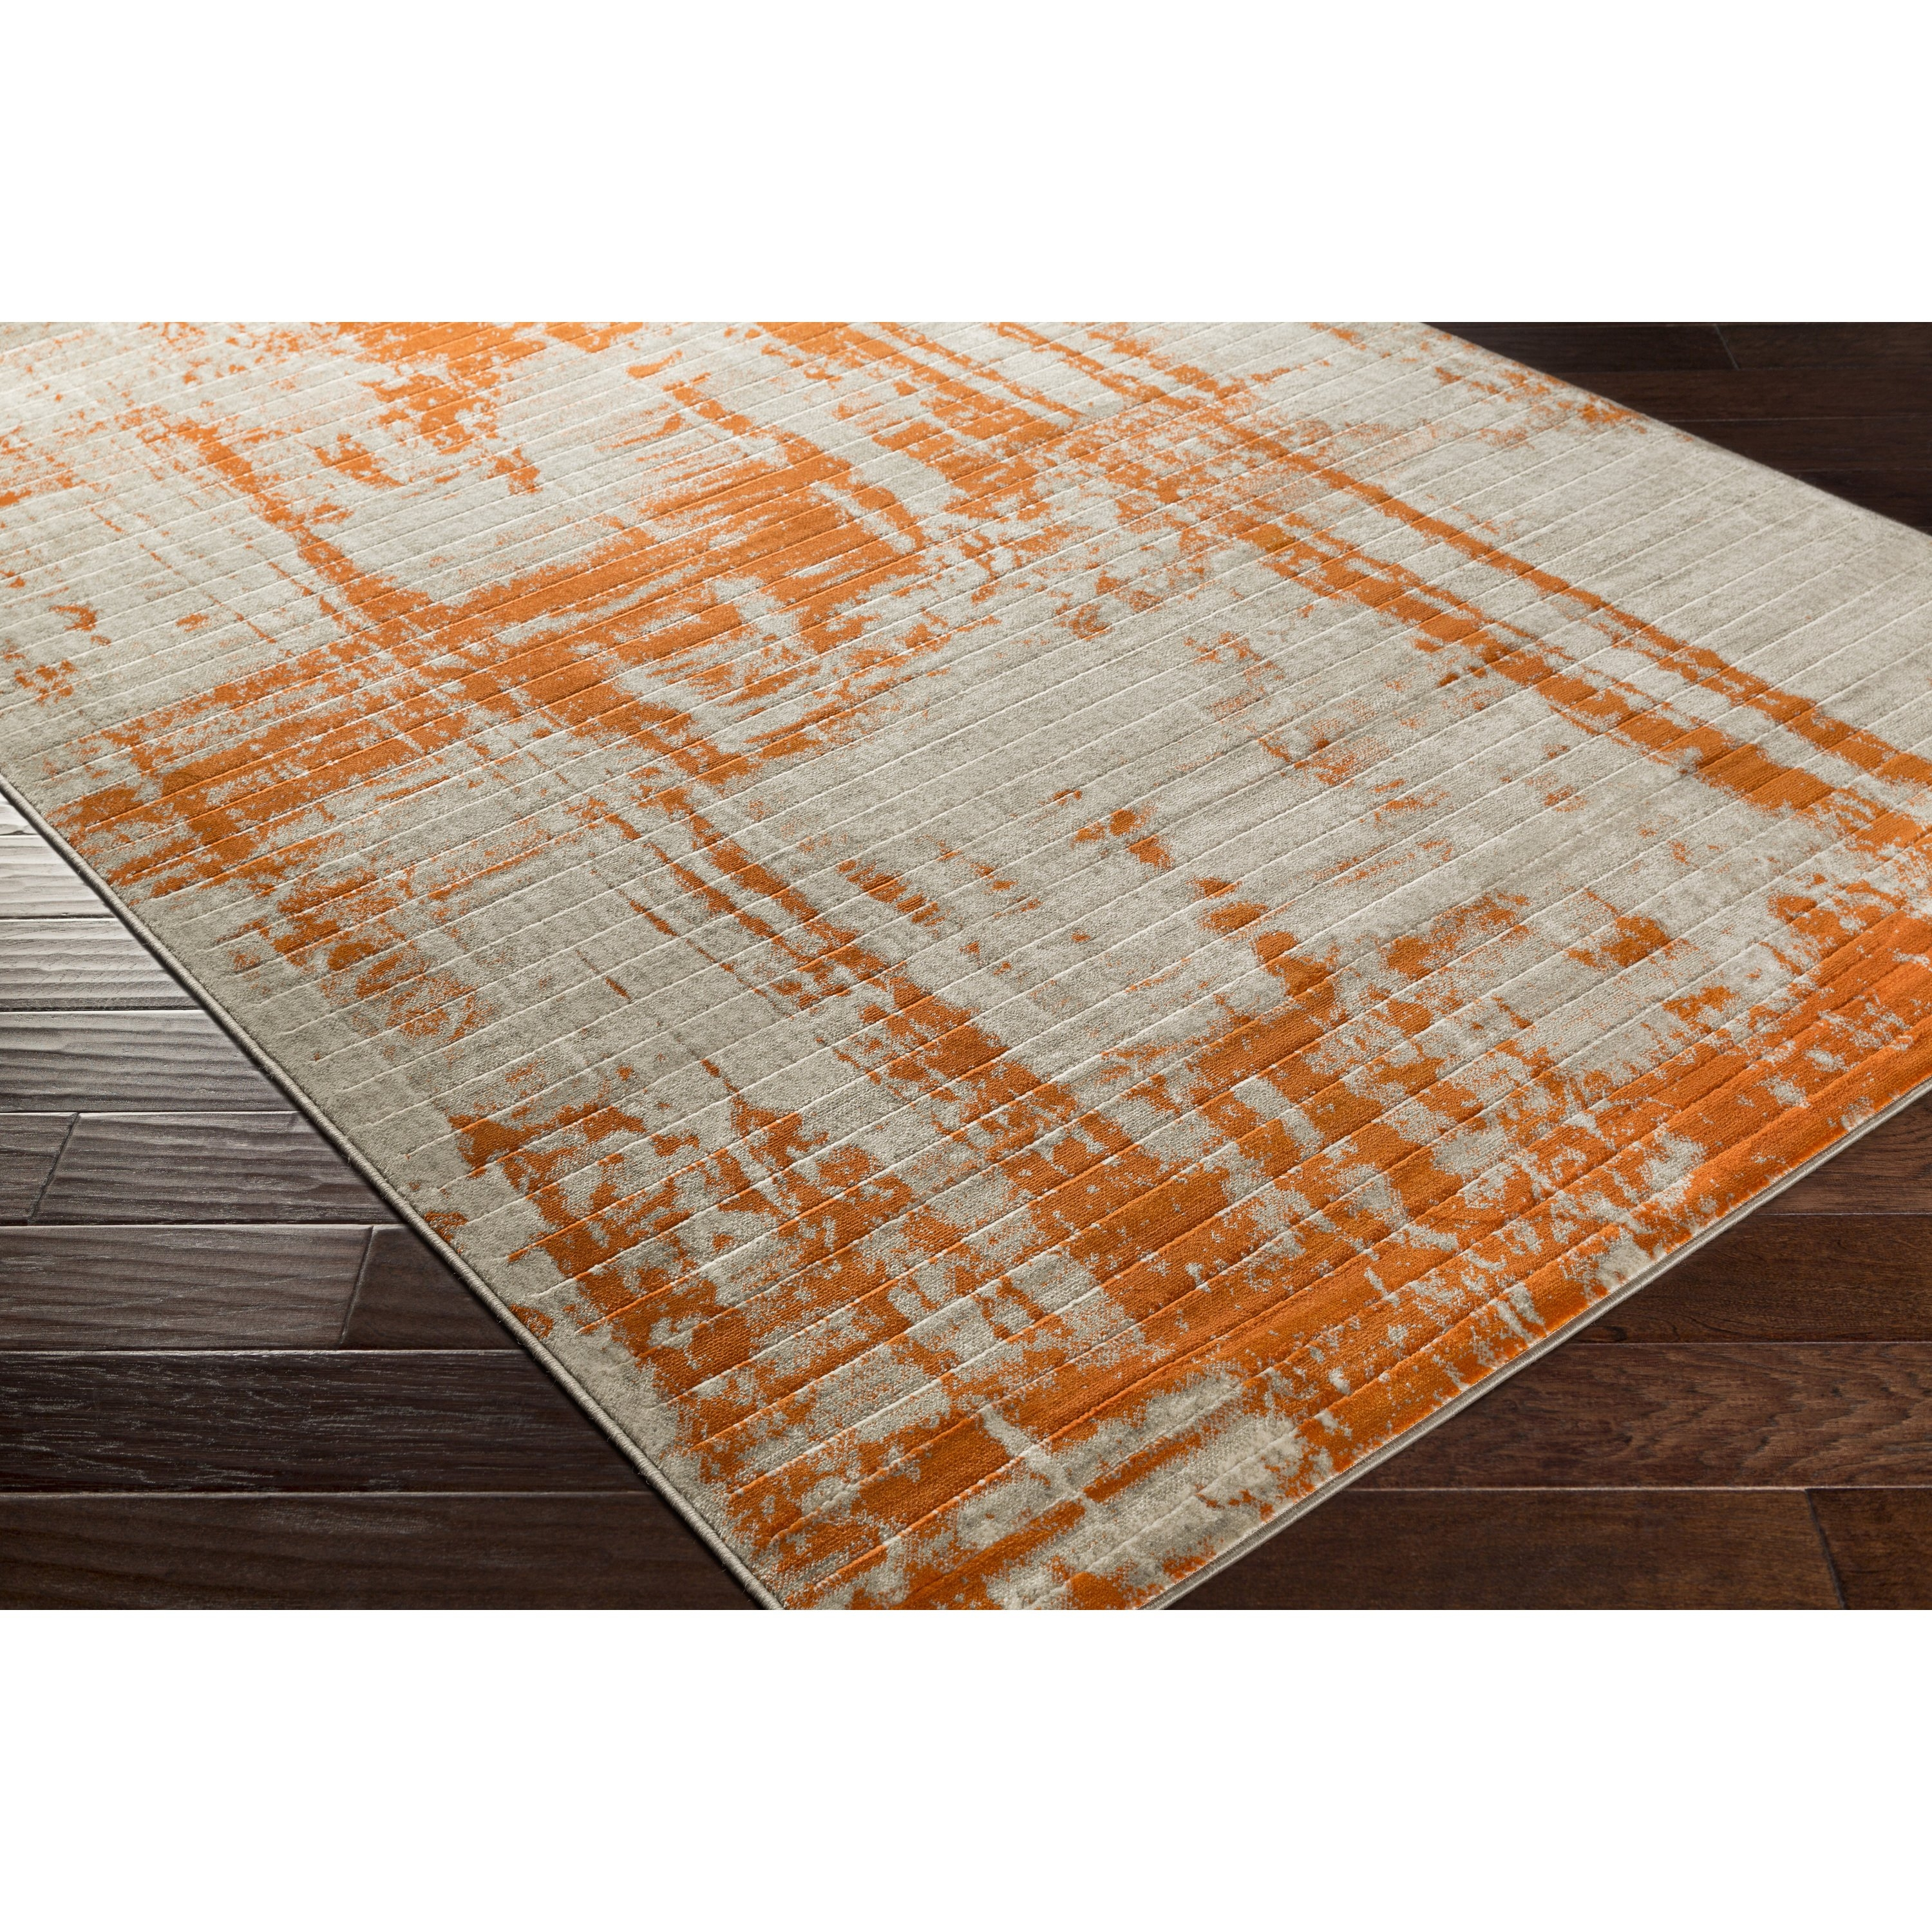 Area Rugs Astounding Gray And Orange Area Rug Yellow And Orange In Orange Floor Rugs (View 4 of 15)